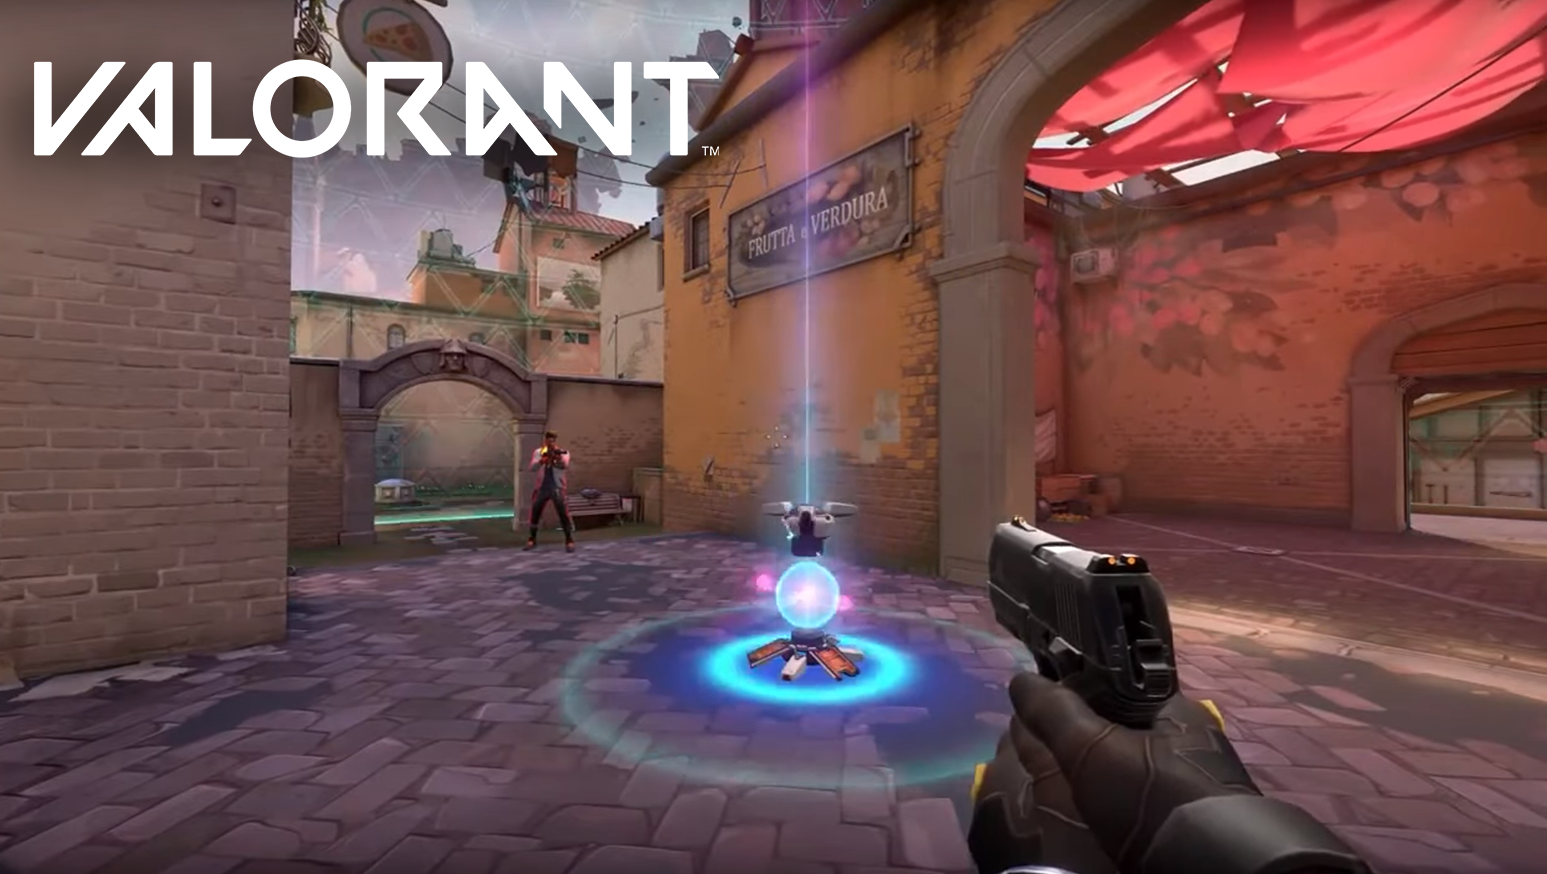 Agent 12 Killjoy deploys a Valorant turret in Act 2 teaser.